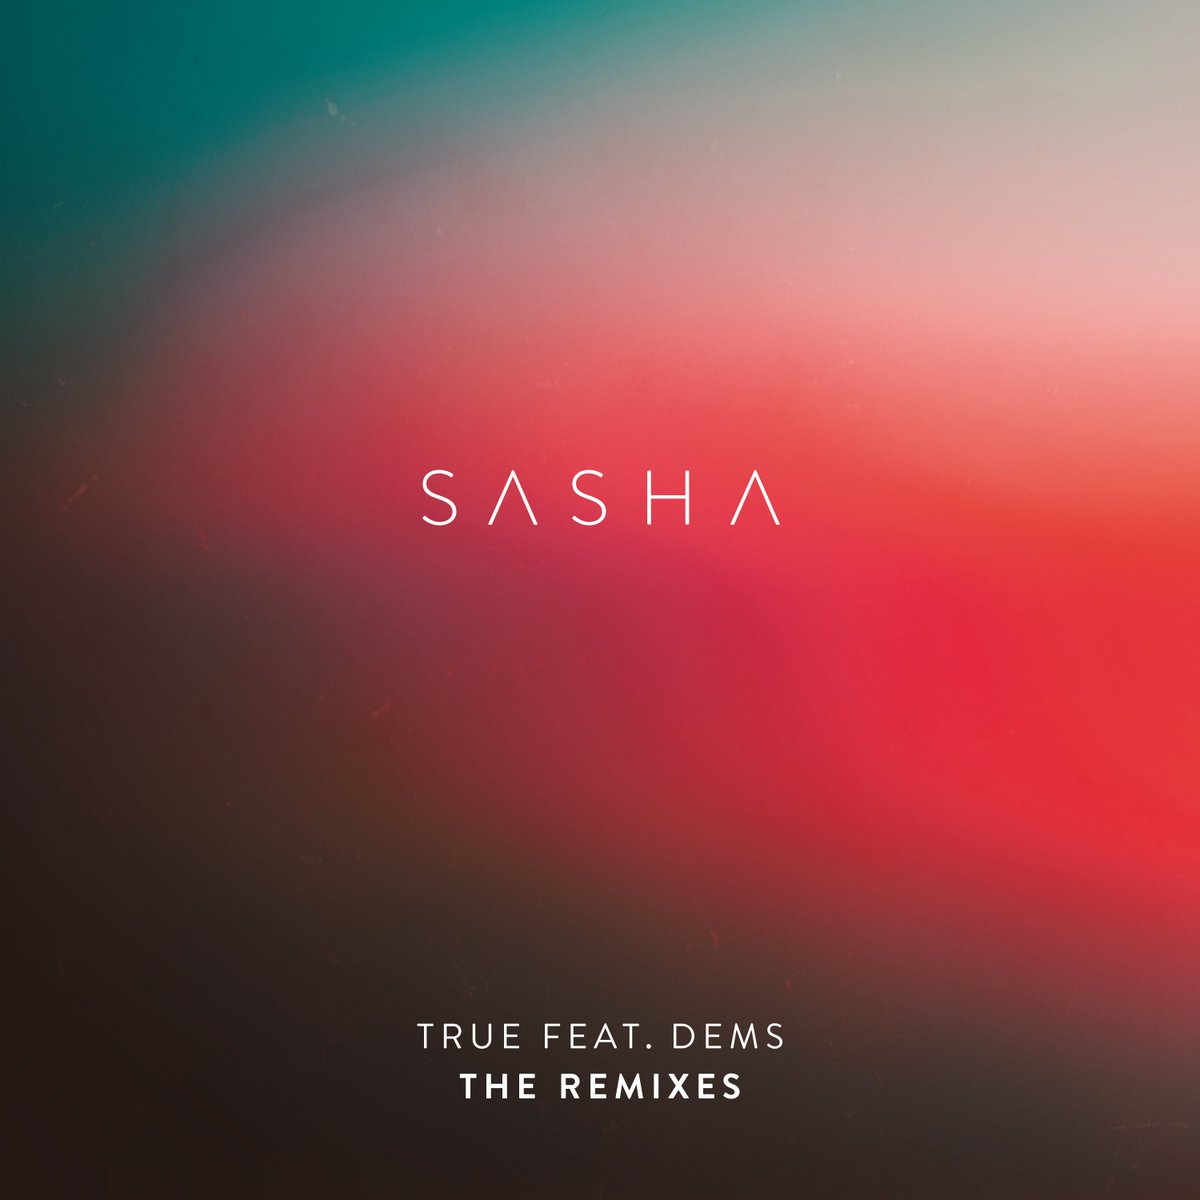 Happy to announce the 'True ft @demsmusic' The Remixes! Out this Friday. @TheSoundYouNeed is premiering @gardencitymove's excellent remix now, listen here: https://t.co/Gx4mseOXaG https://t.co/S40aUkRixF